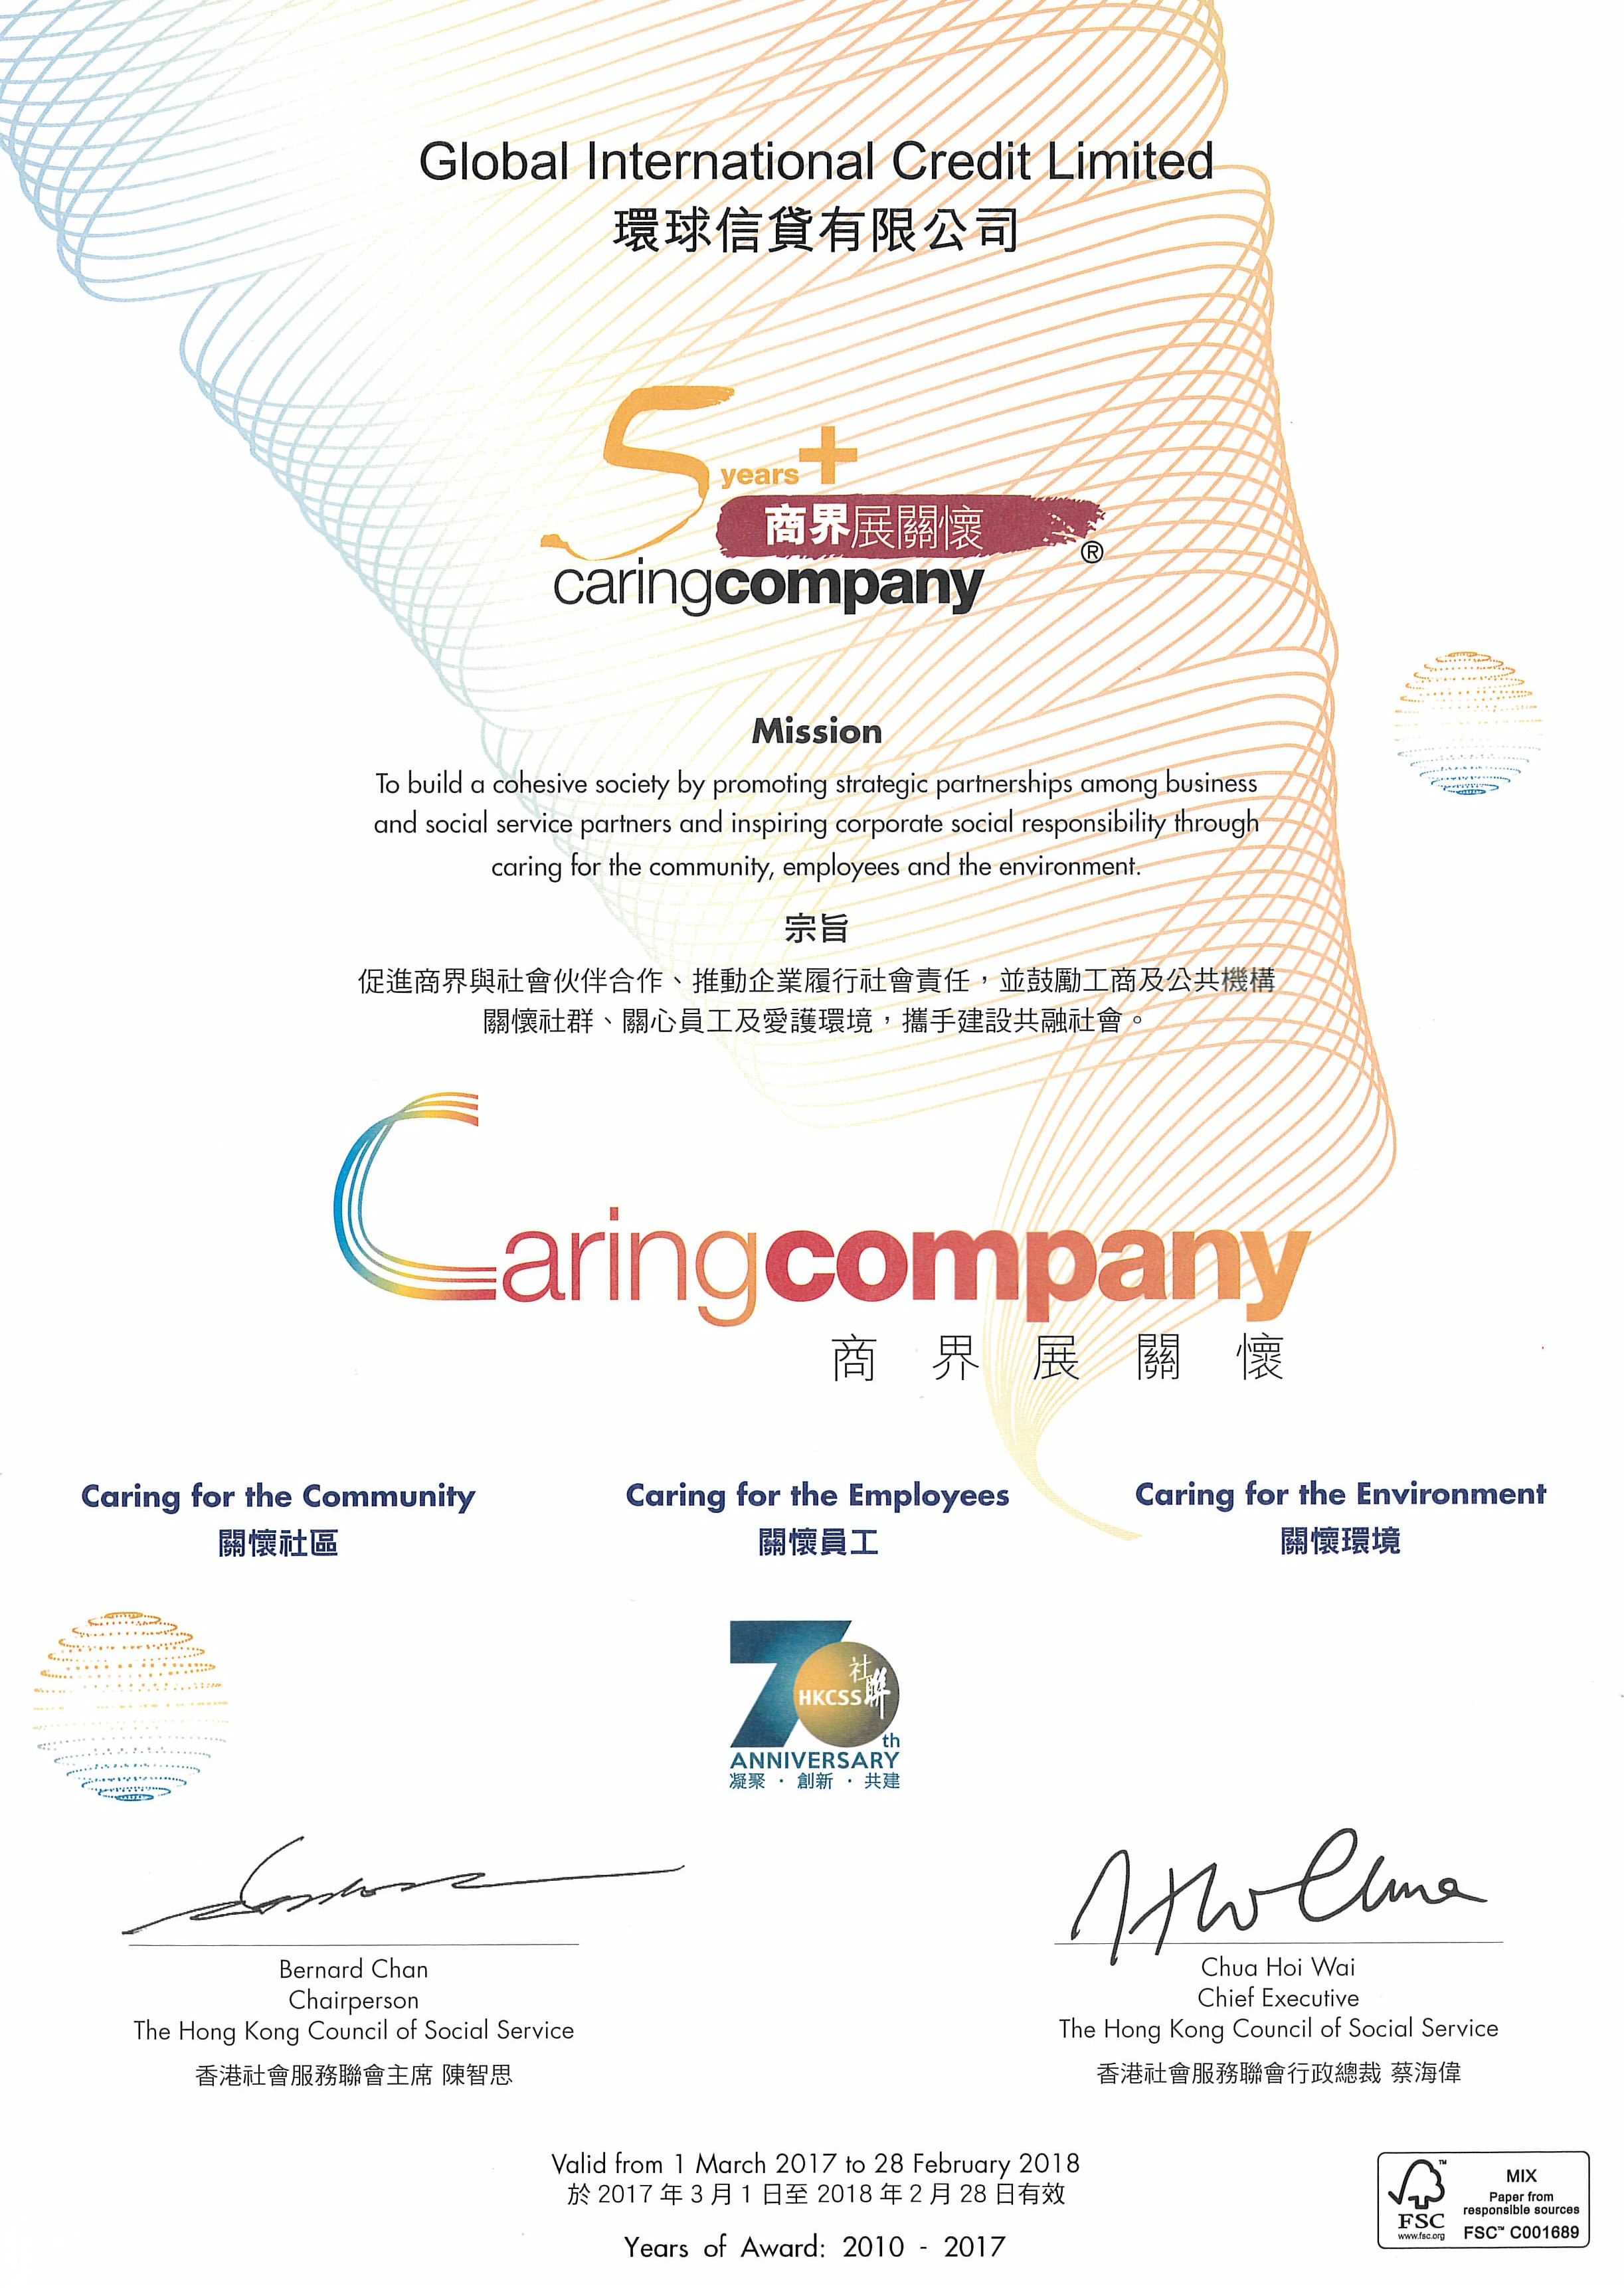 GICL – Caring Company 2017-2018